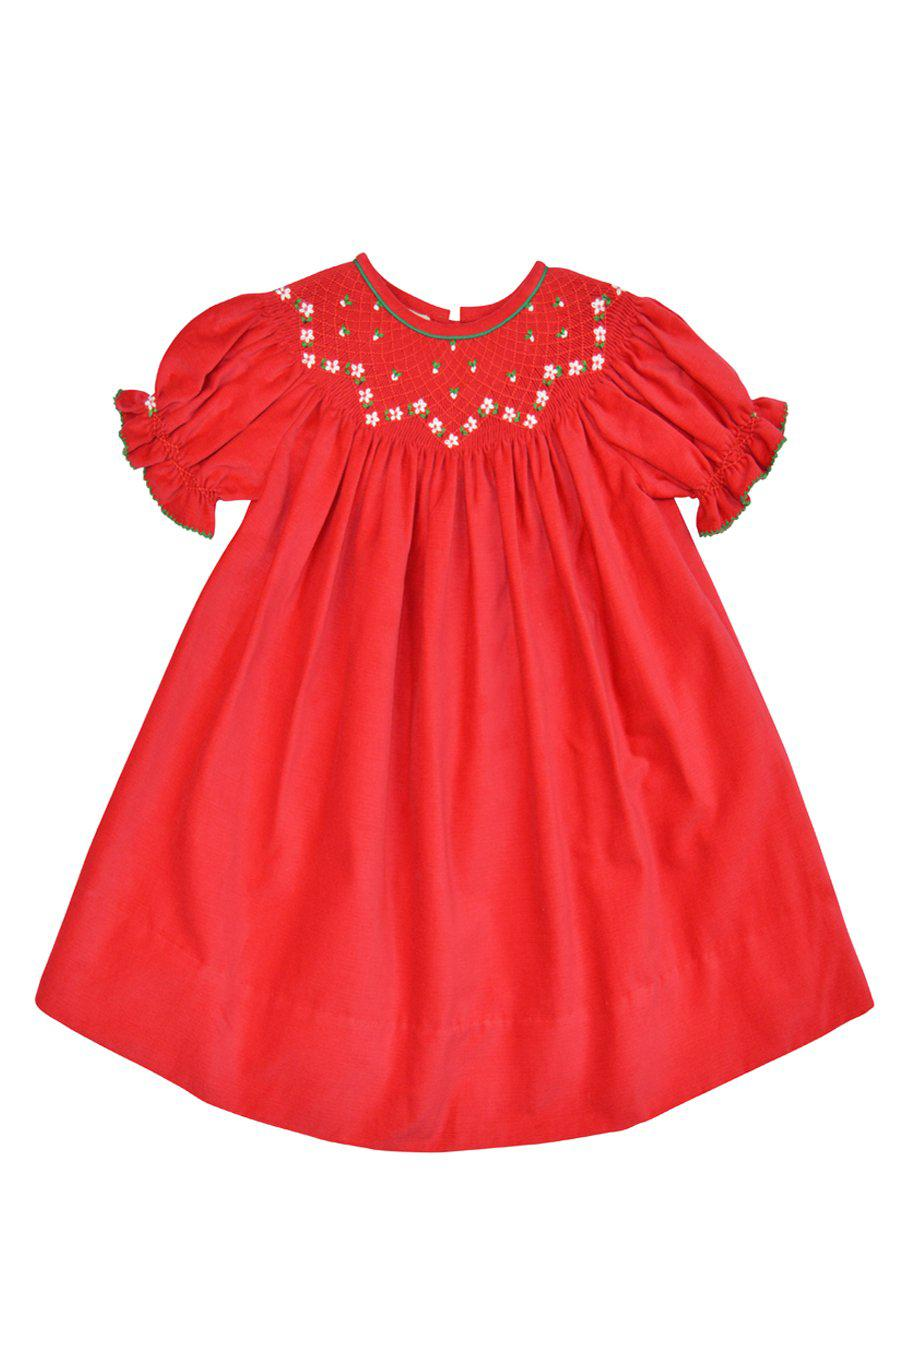 Heather Red Cotton Smocked Bishop dress